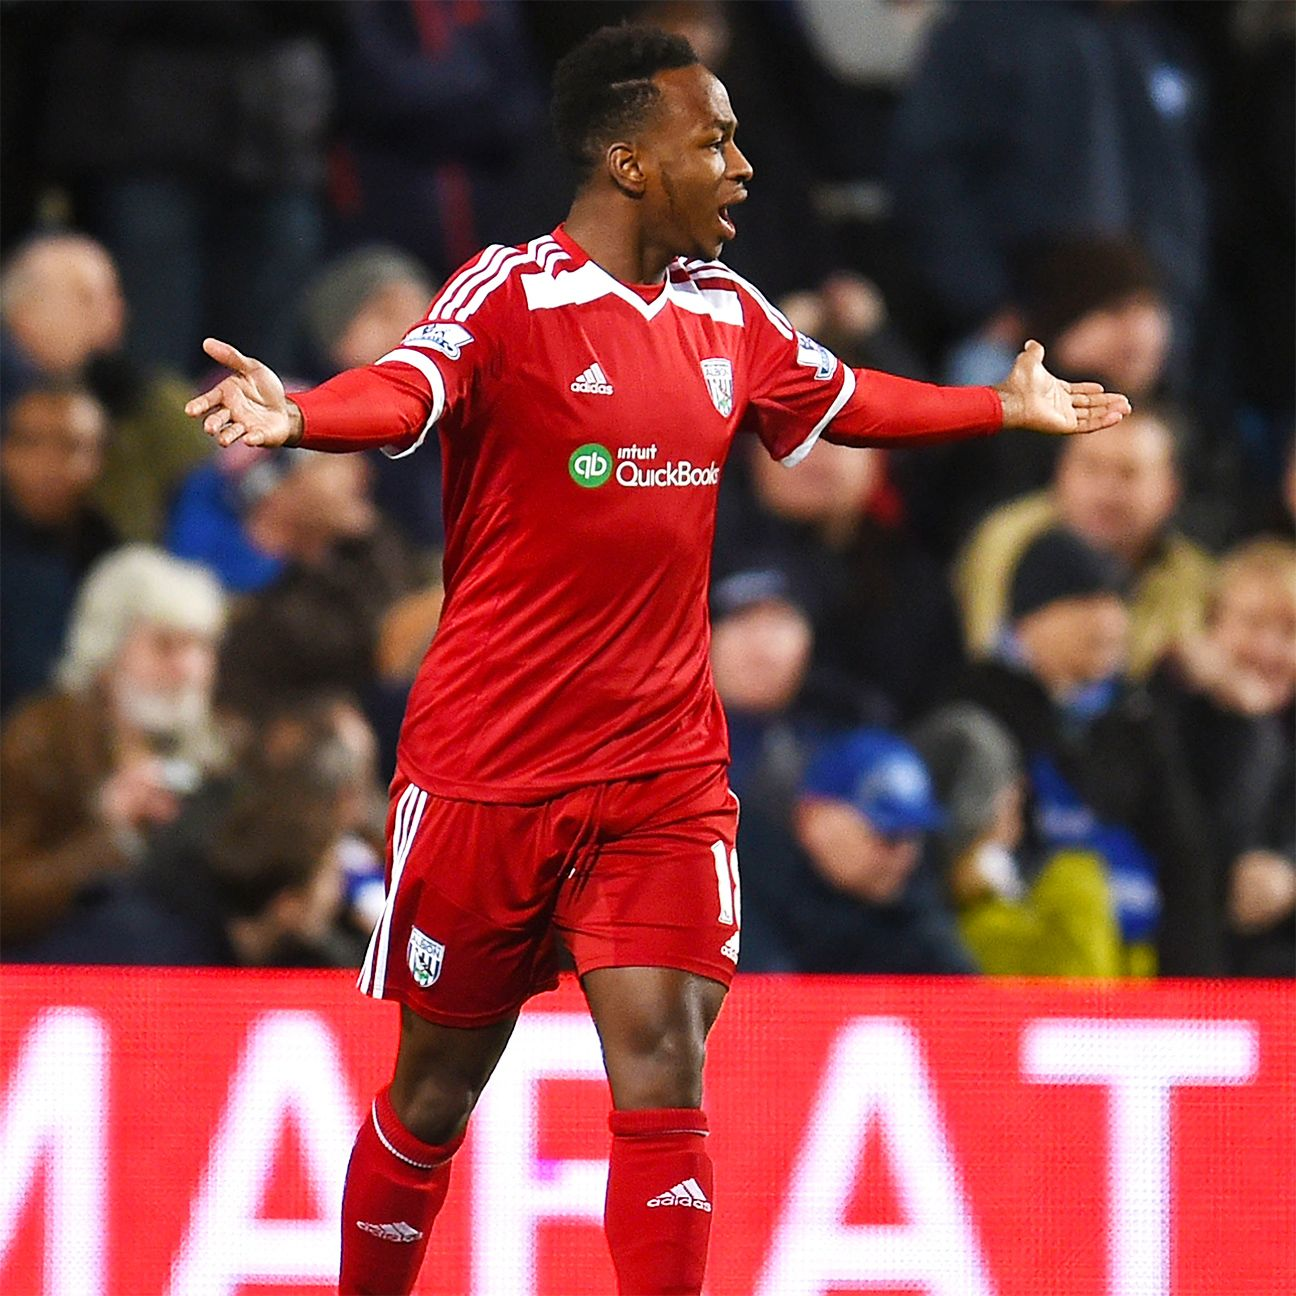 Saido Berahino and West Brom were left frustrated after letting a two-goal lead slip away at QPR.